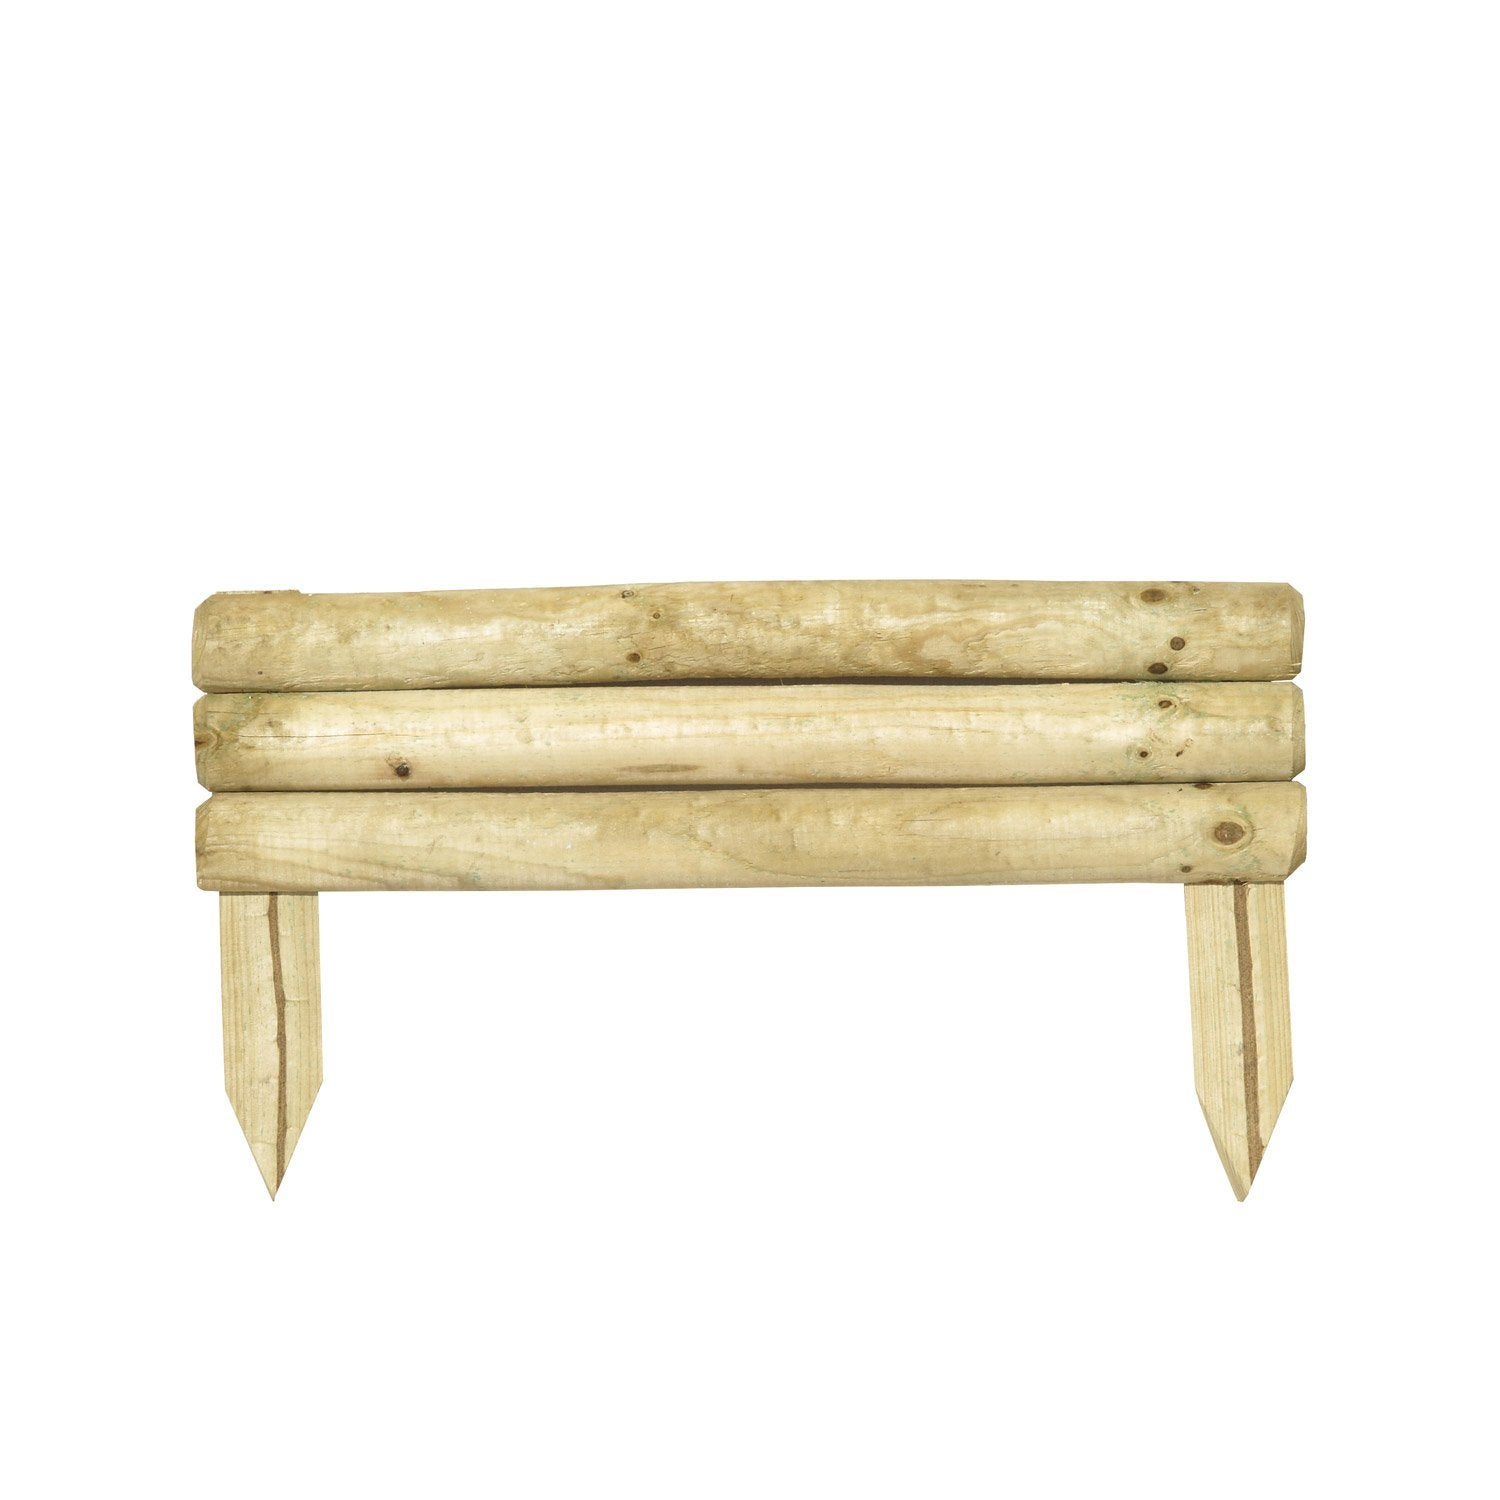 bordure planter minitraverse bois naturel x